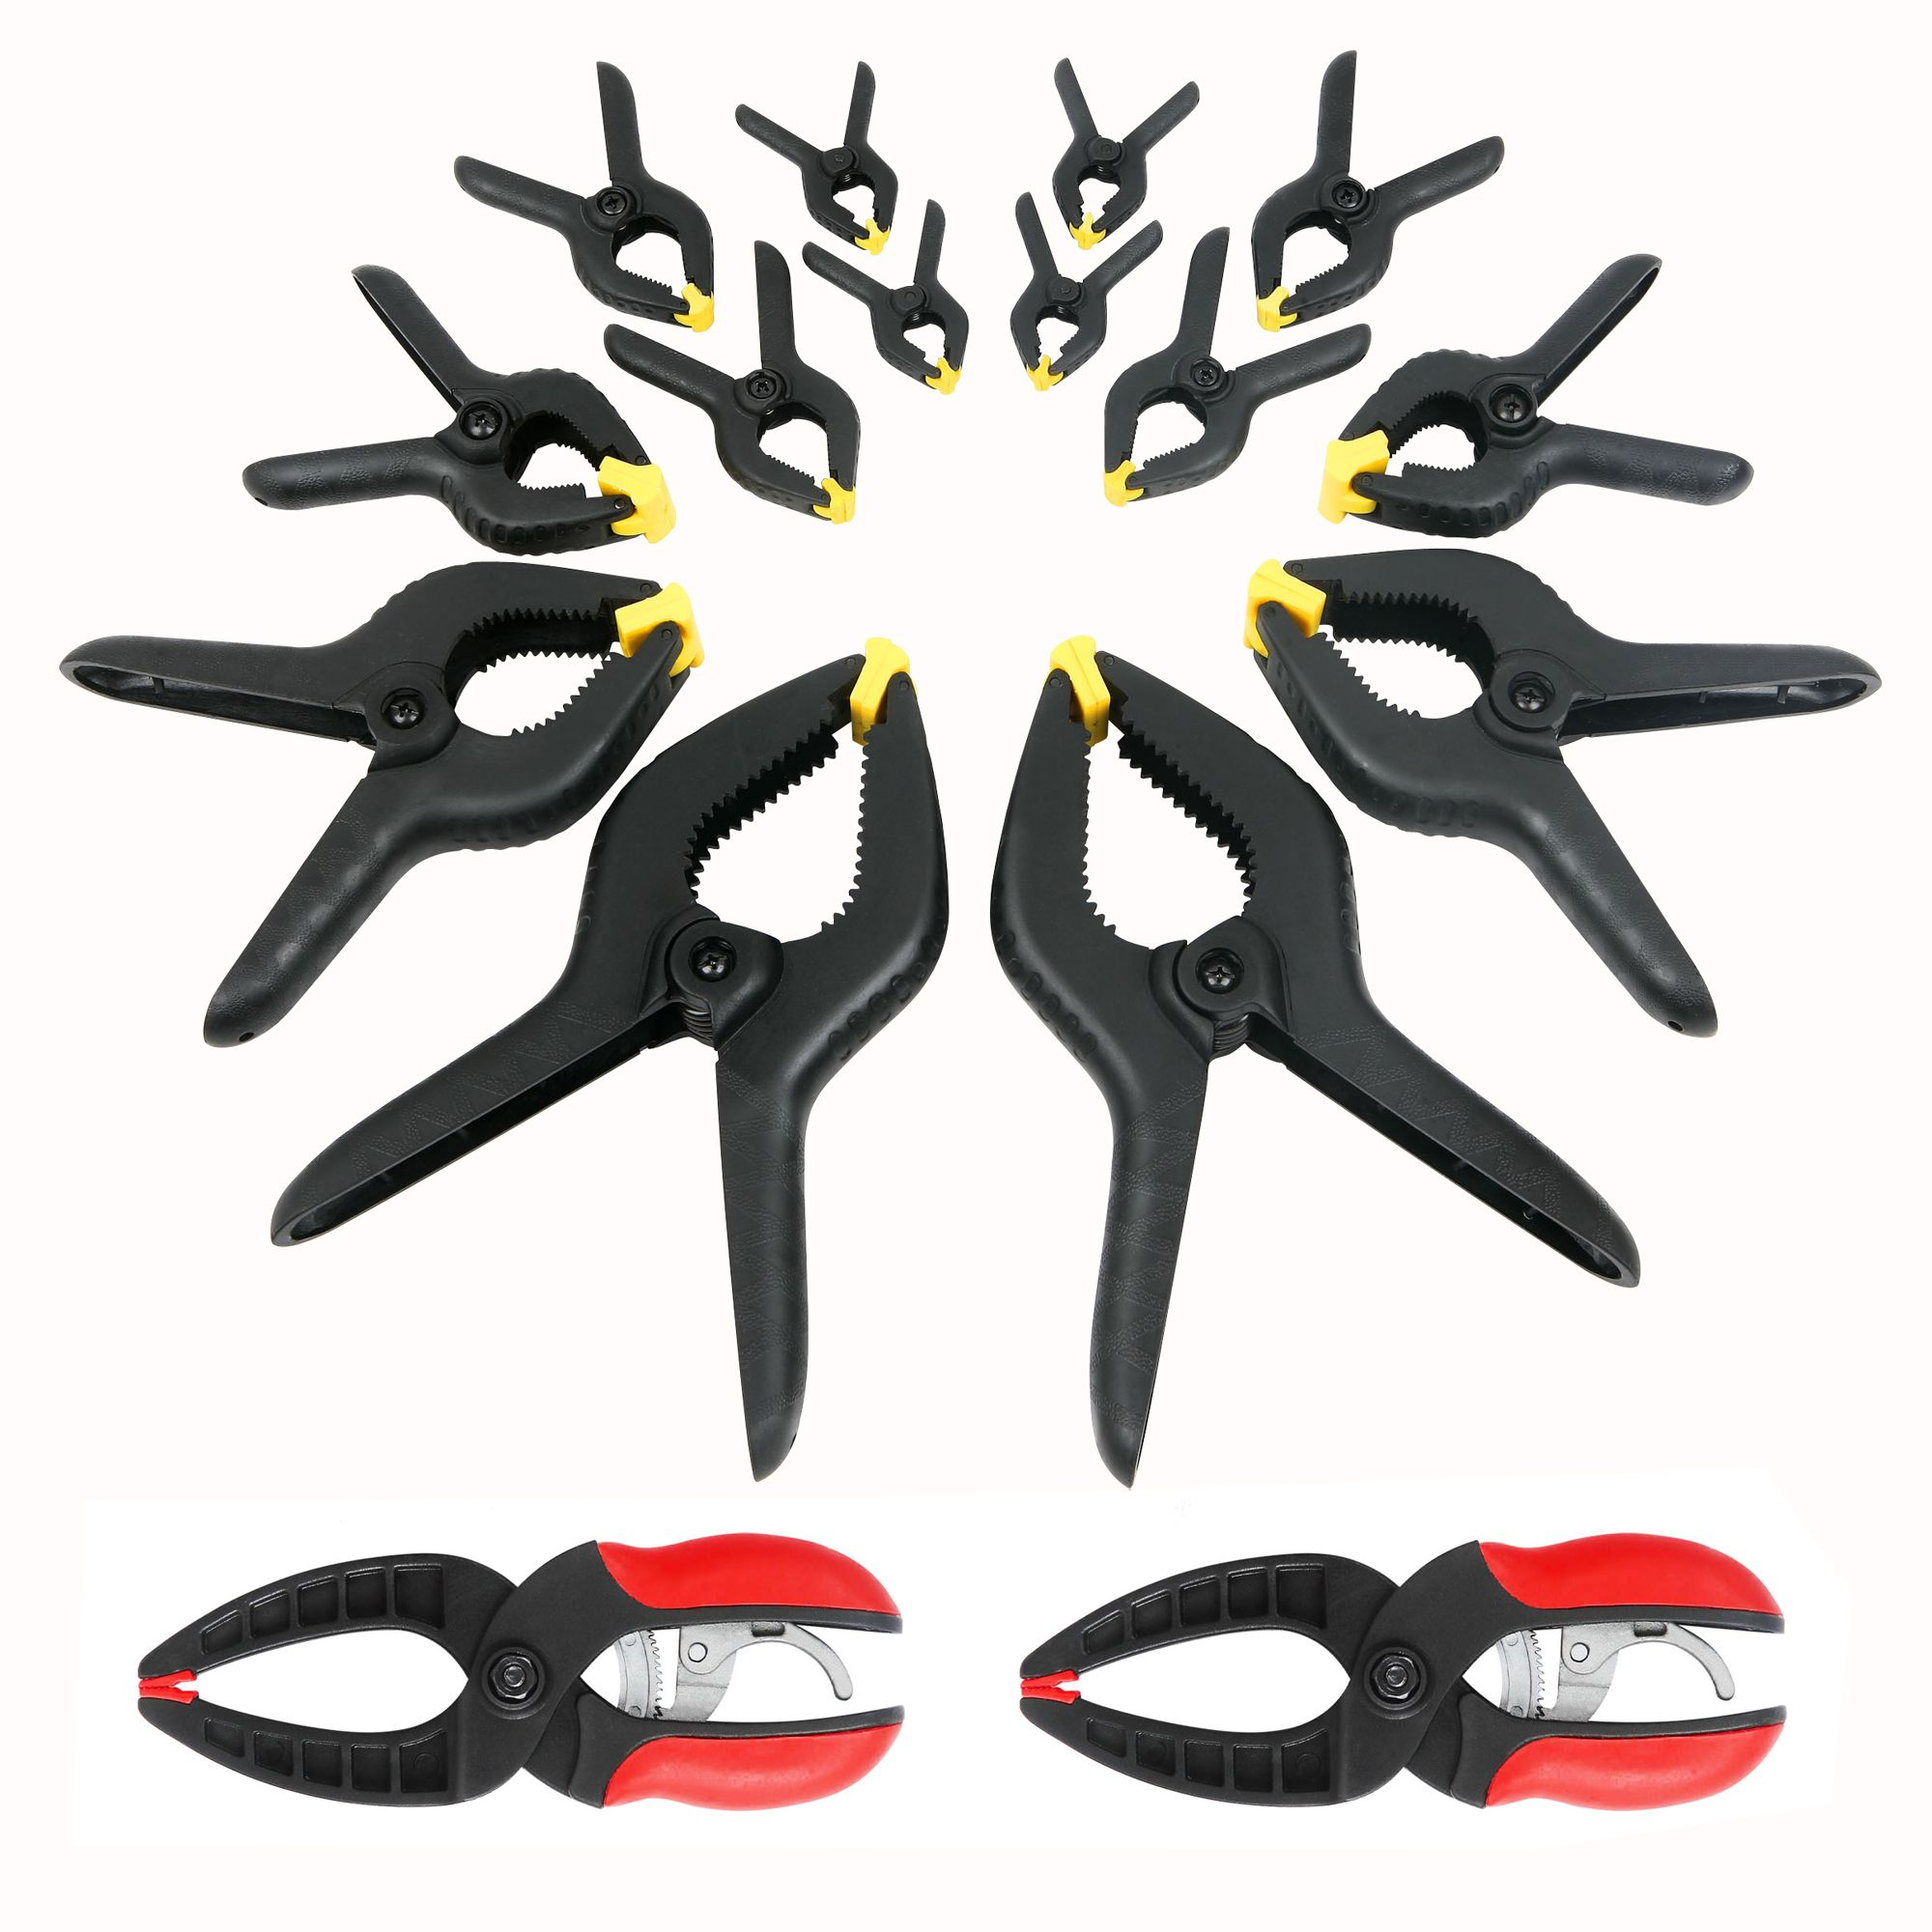 14 pc. Spring Clamp Set with 2 pc. Ratcheting